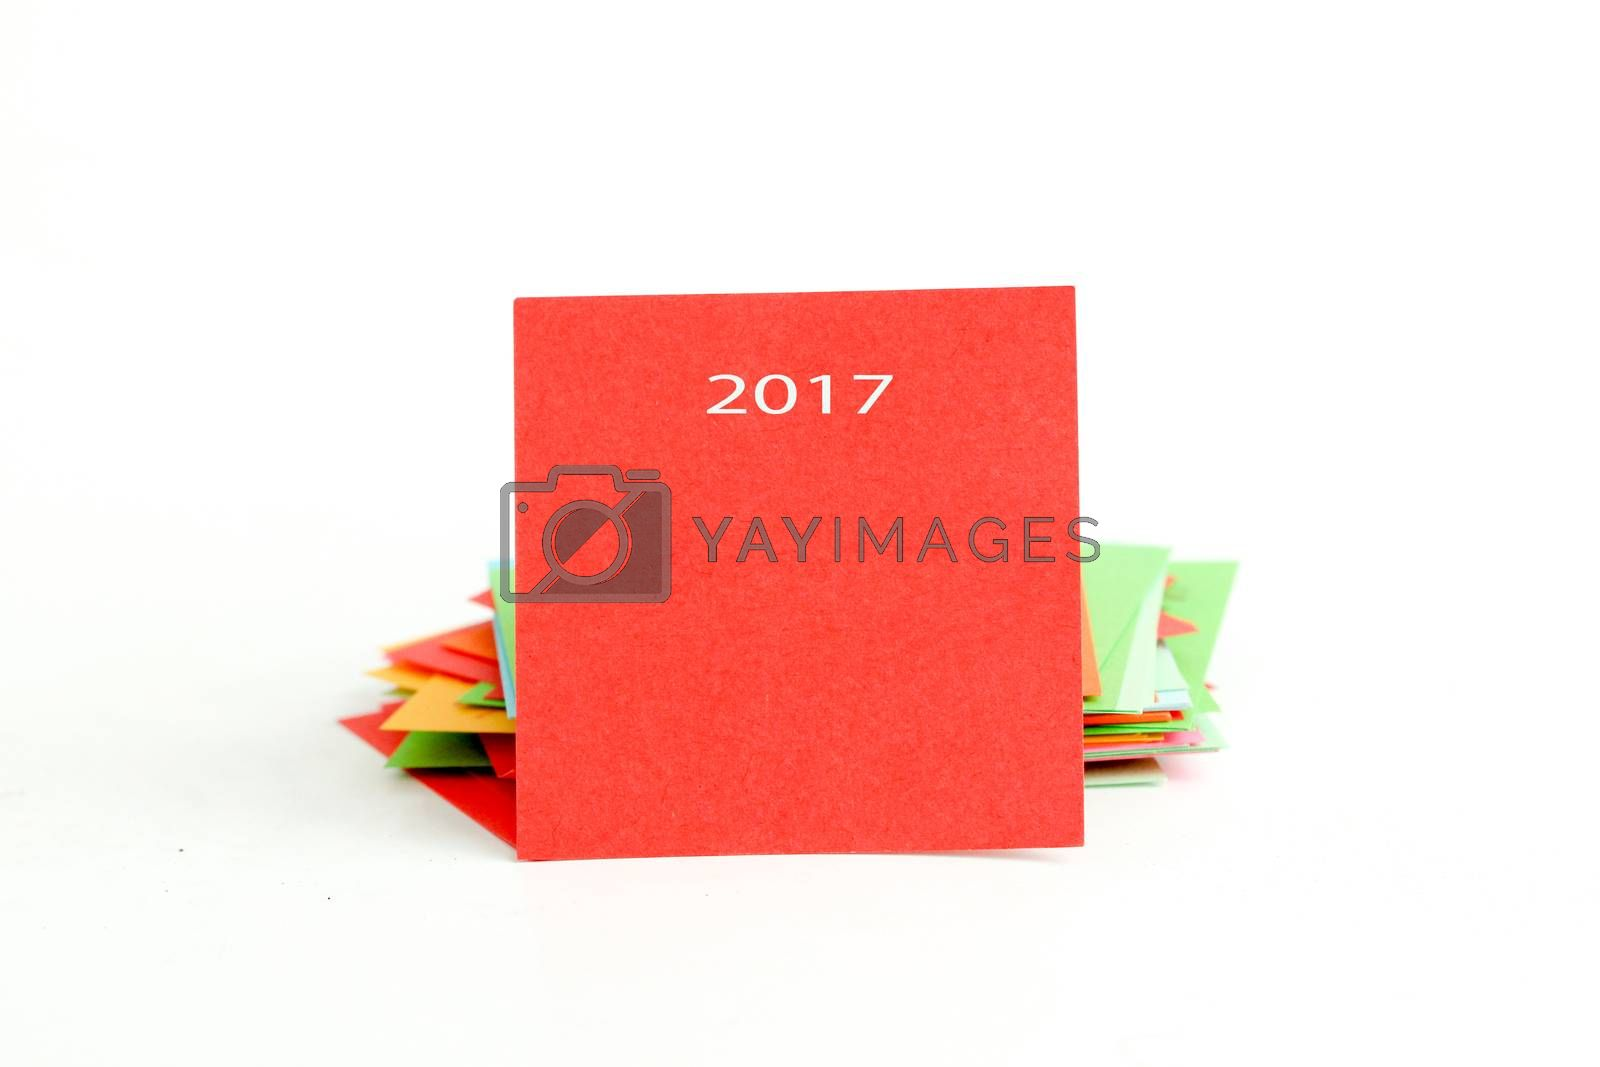 picture of a red note paper with text 2017